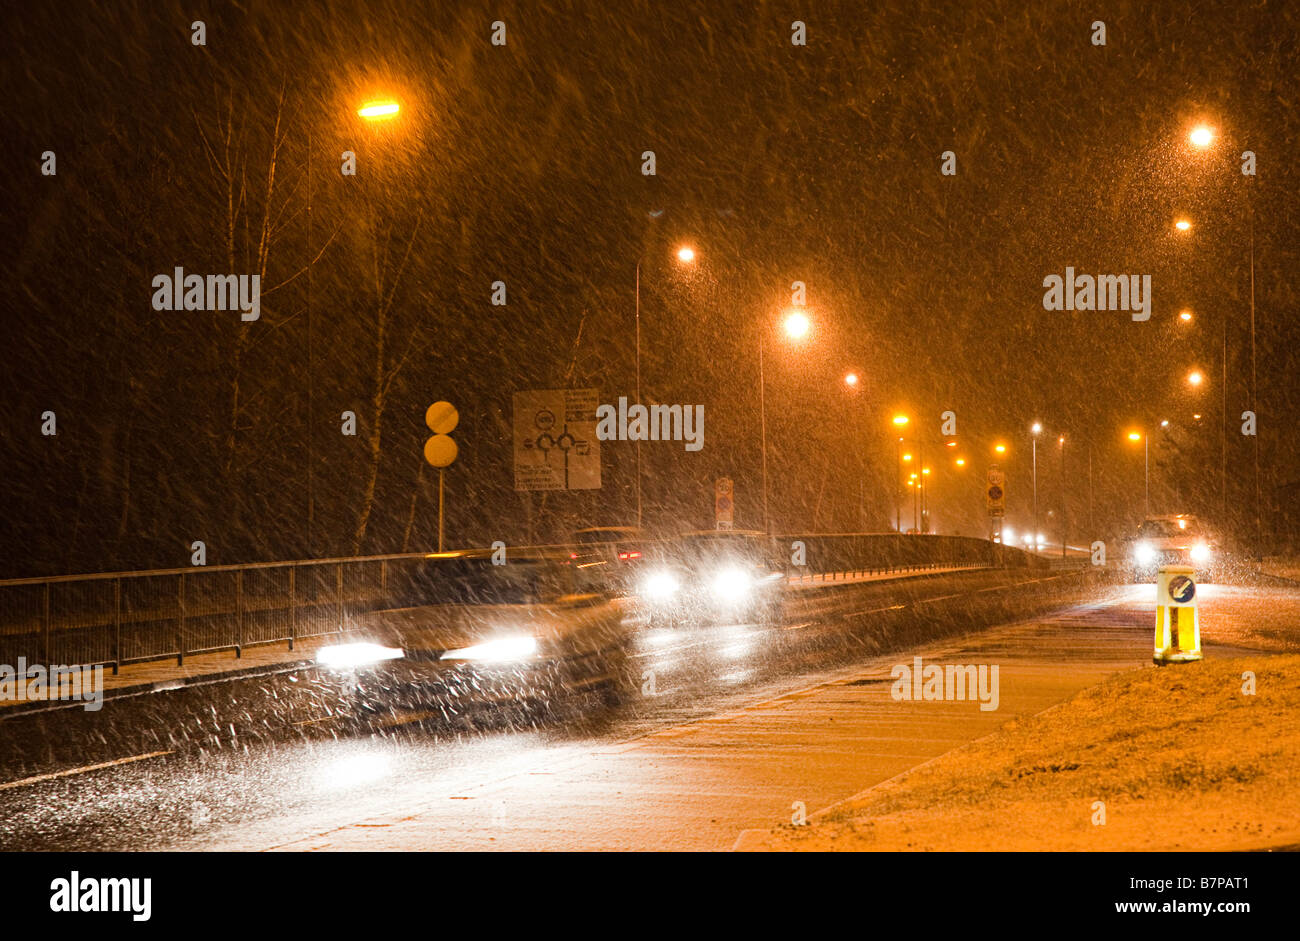 Cars driving at night in winter snowing conditions Cwmbran Wales UK - Stock Image